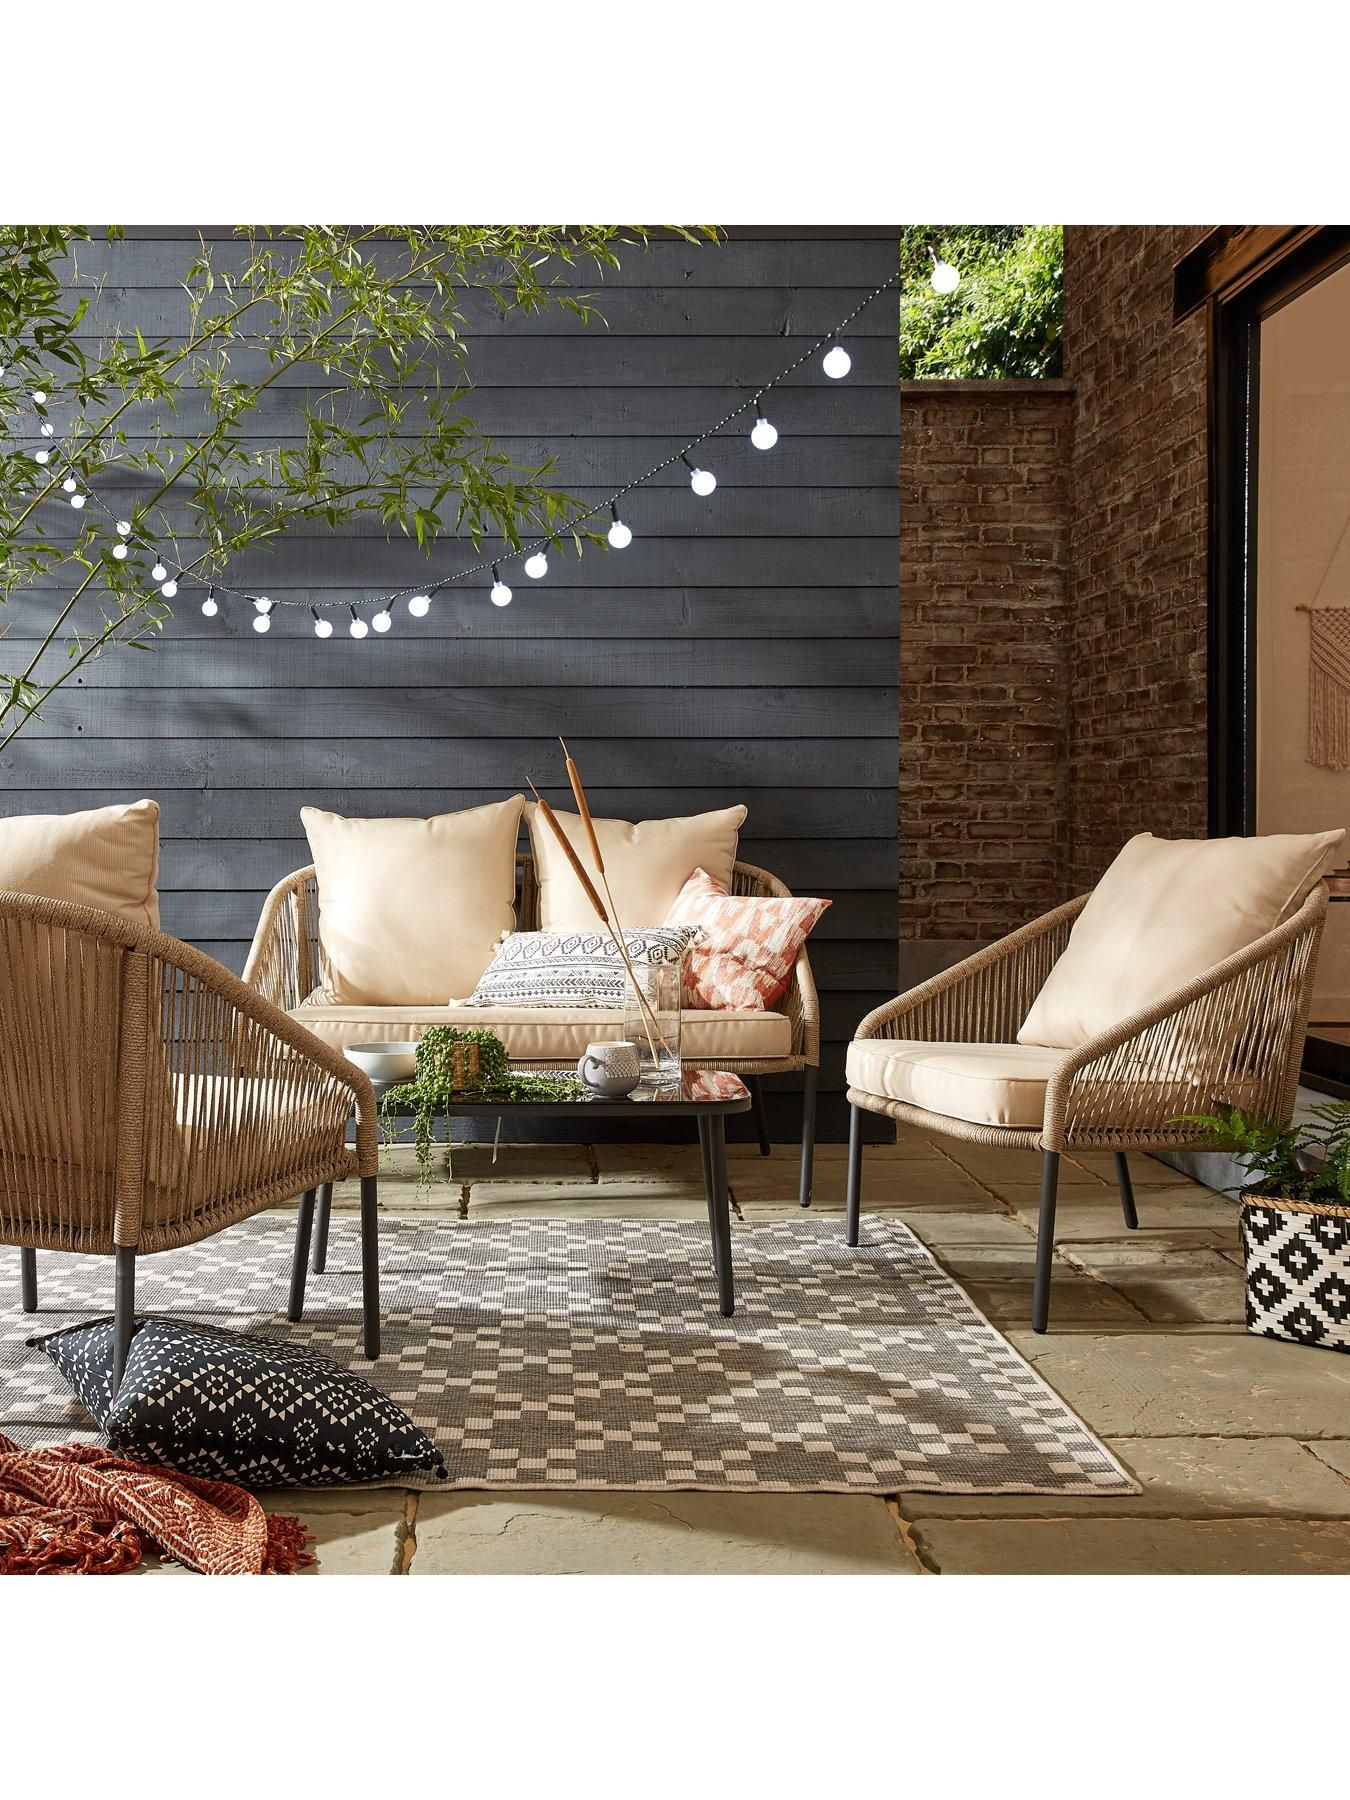 Napoli Rope Effect Sofa Set Garden Furniture Sets Contemporary Outdoor Sofas Garden Furniture Uk